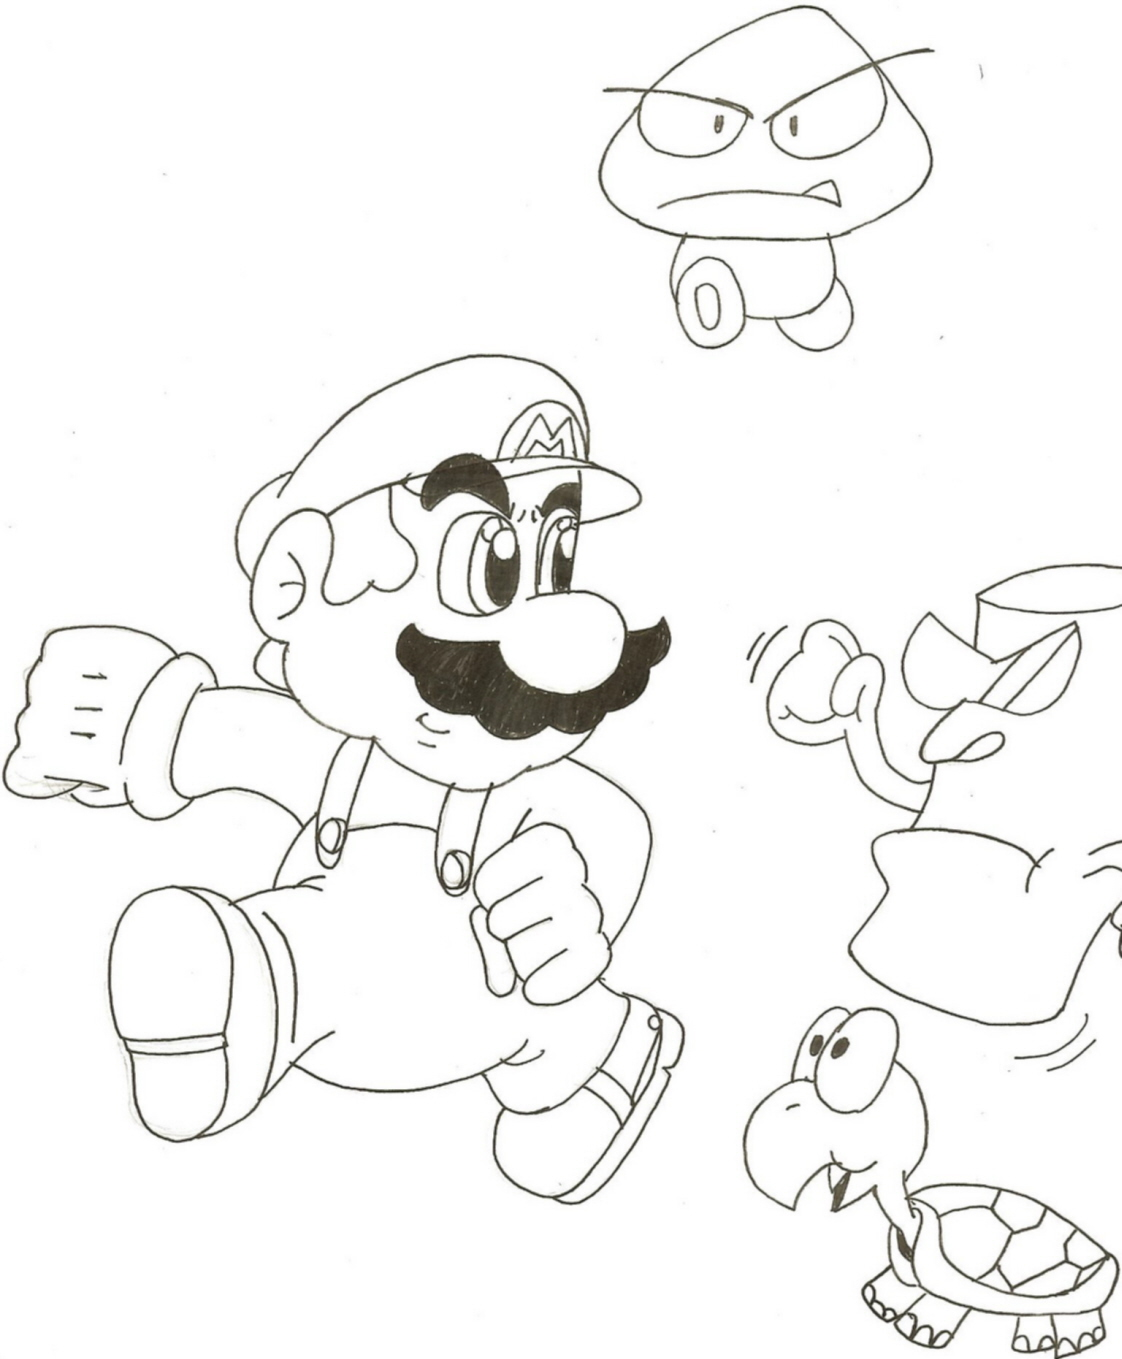 Super Mario Land by jkgoomba89